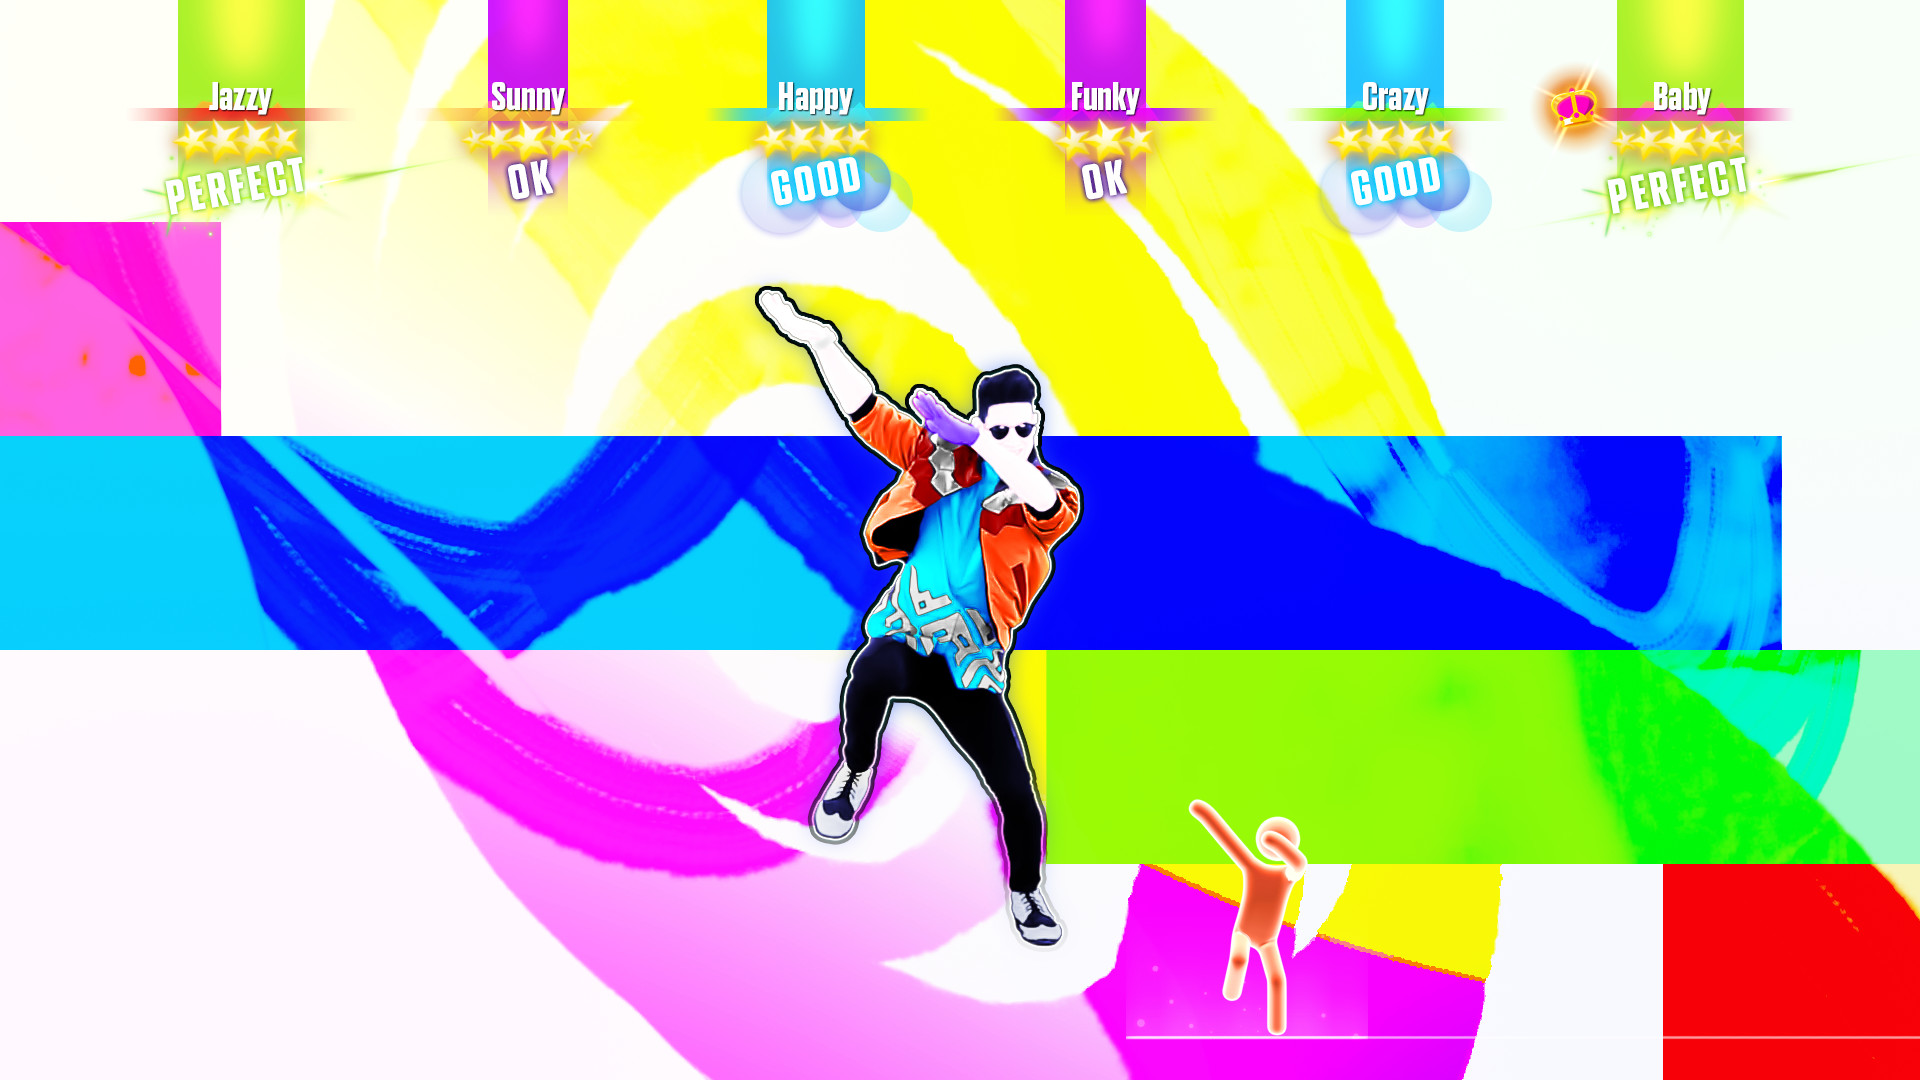 Just Dance 2017 game image